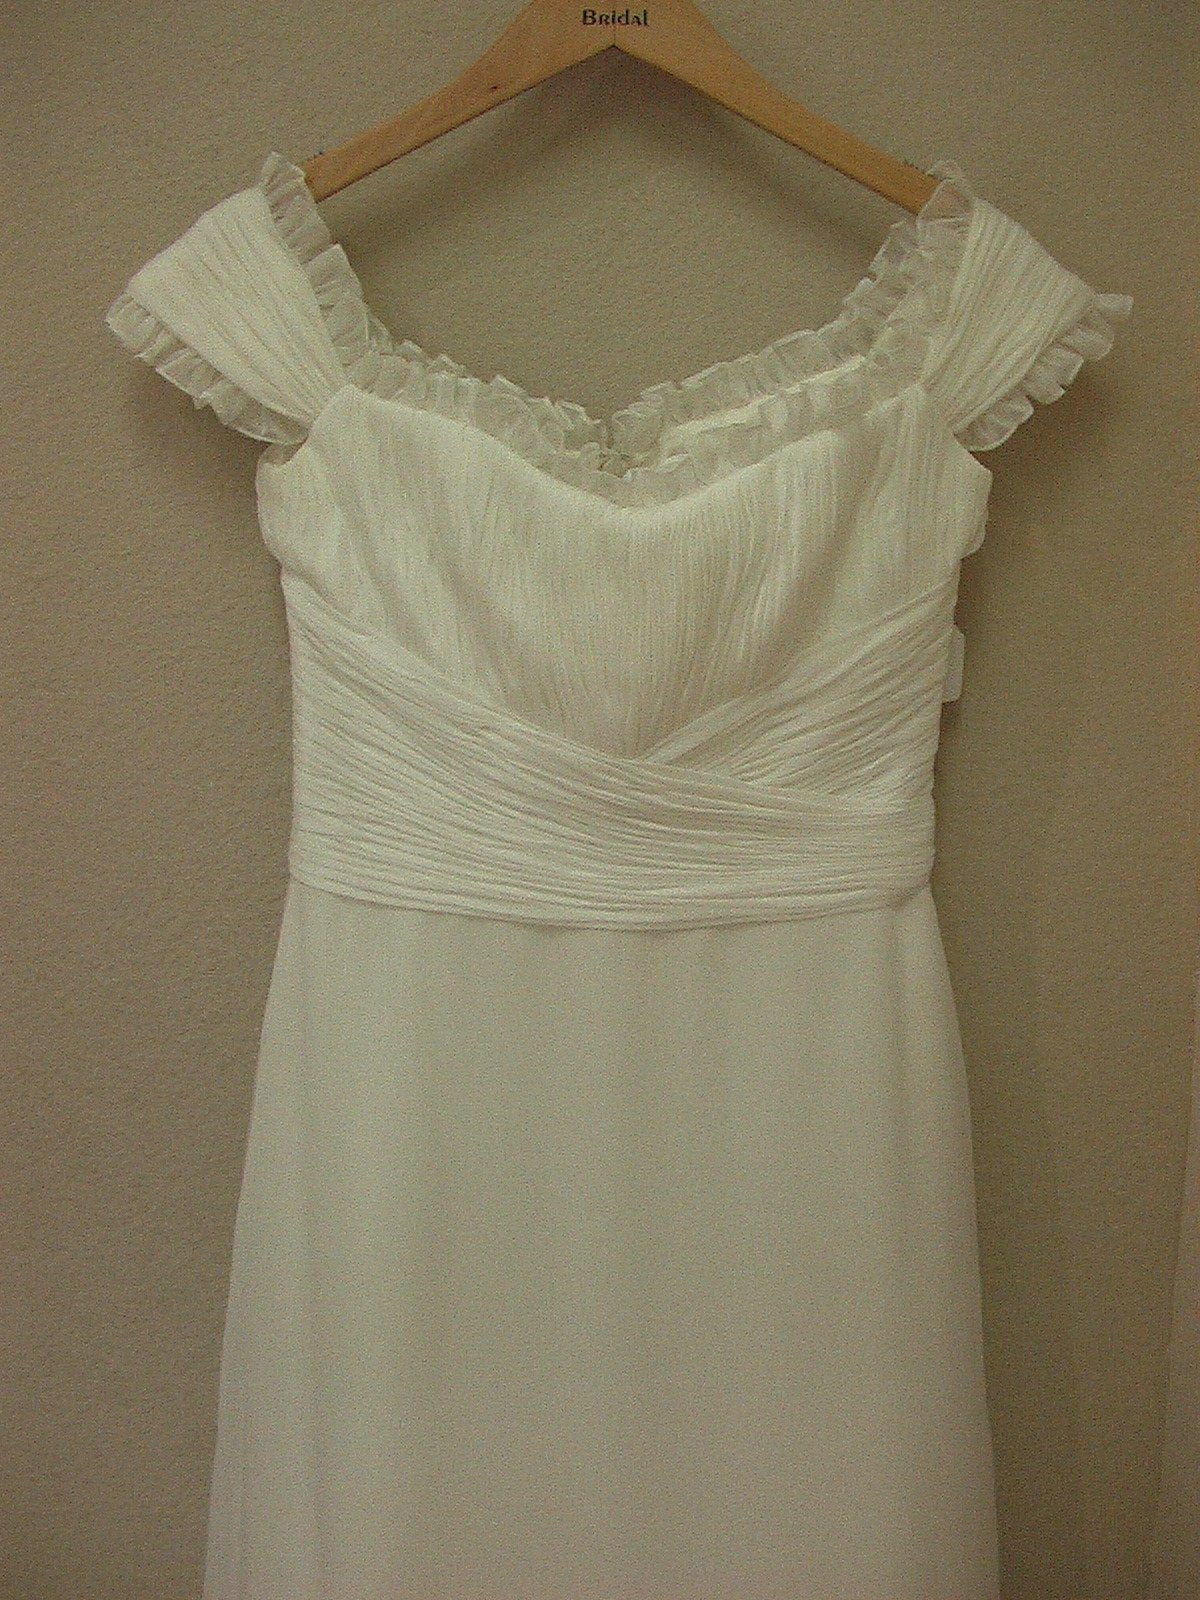 White One 417 by Pronovias Off White size 10 In Stock Wedding Dress - Tom's Bridal